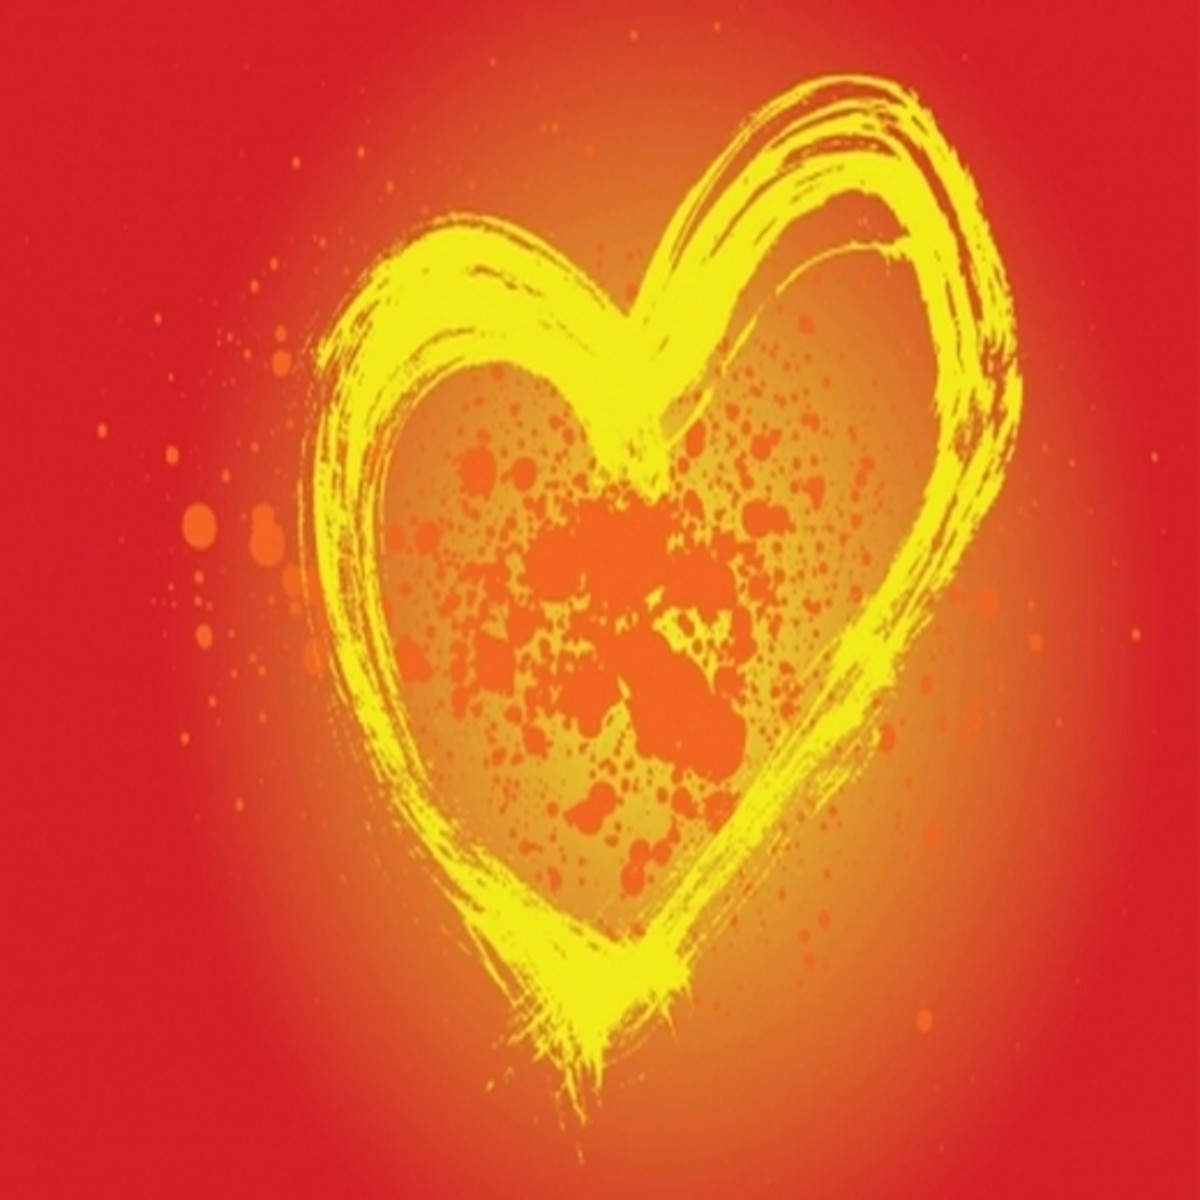 Yellow Heart on Red Background